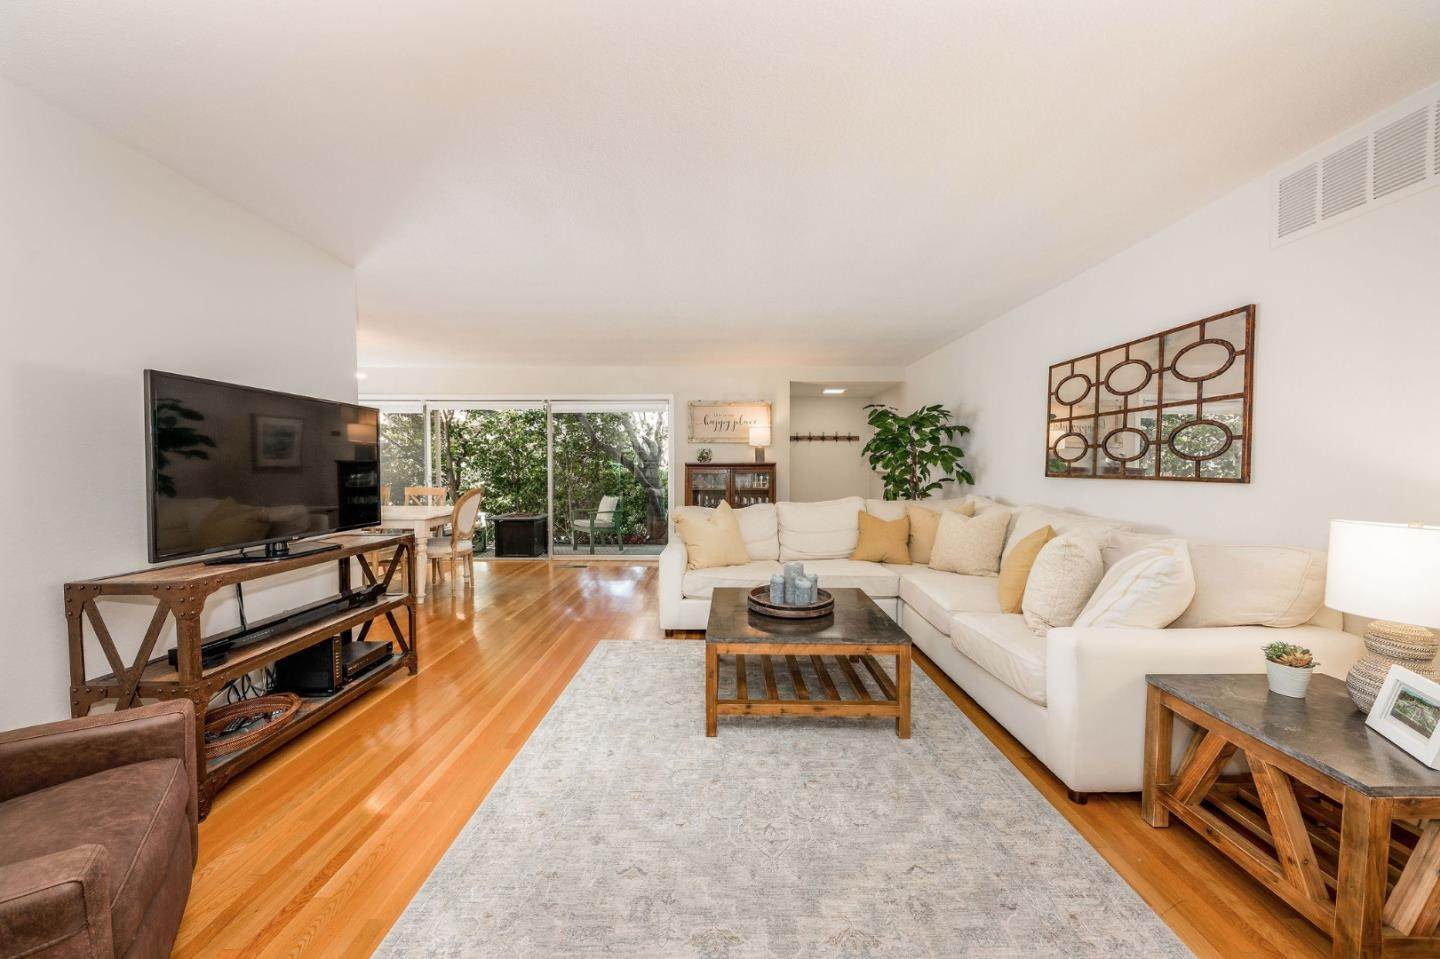 Condominiums for Sale at 772 University Avenue Palo Alto, California 94301 United States